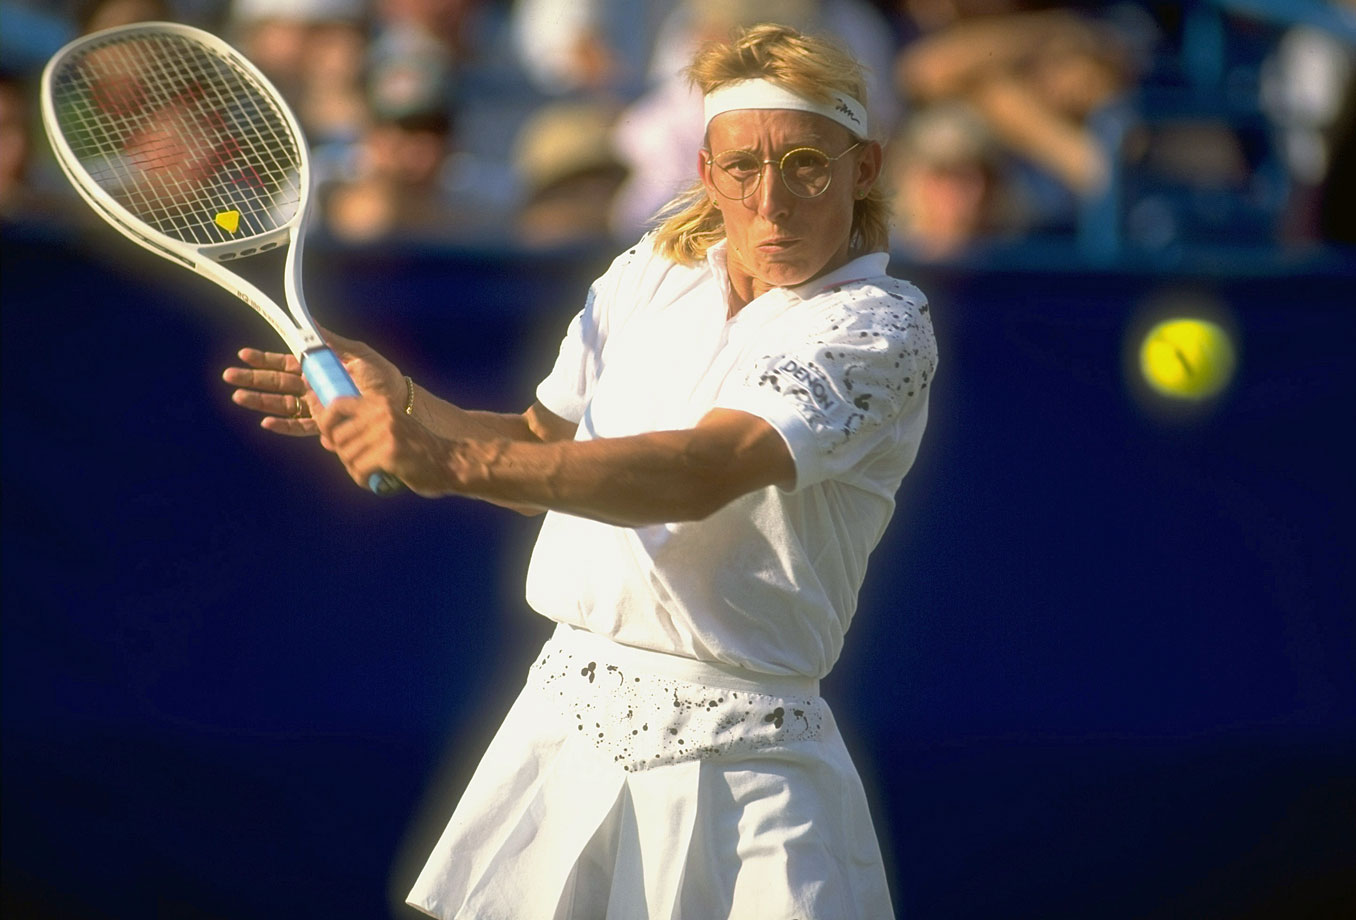 Billie Jean King called Navratilova the greatest singles, doubles and mixed doubles player who's ever lived. On top of that, she did it playing left-handed.